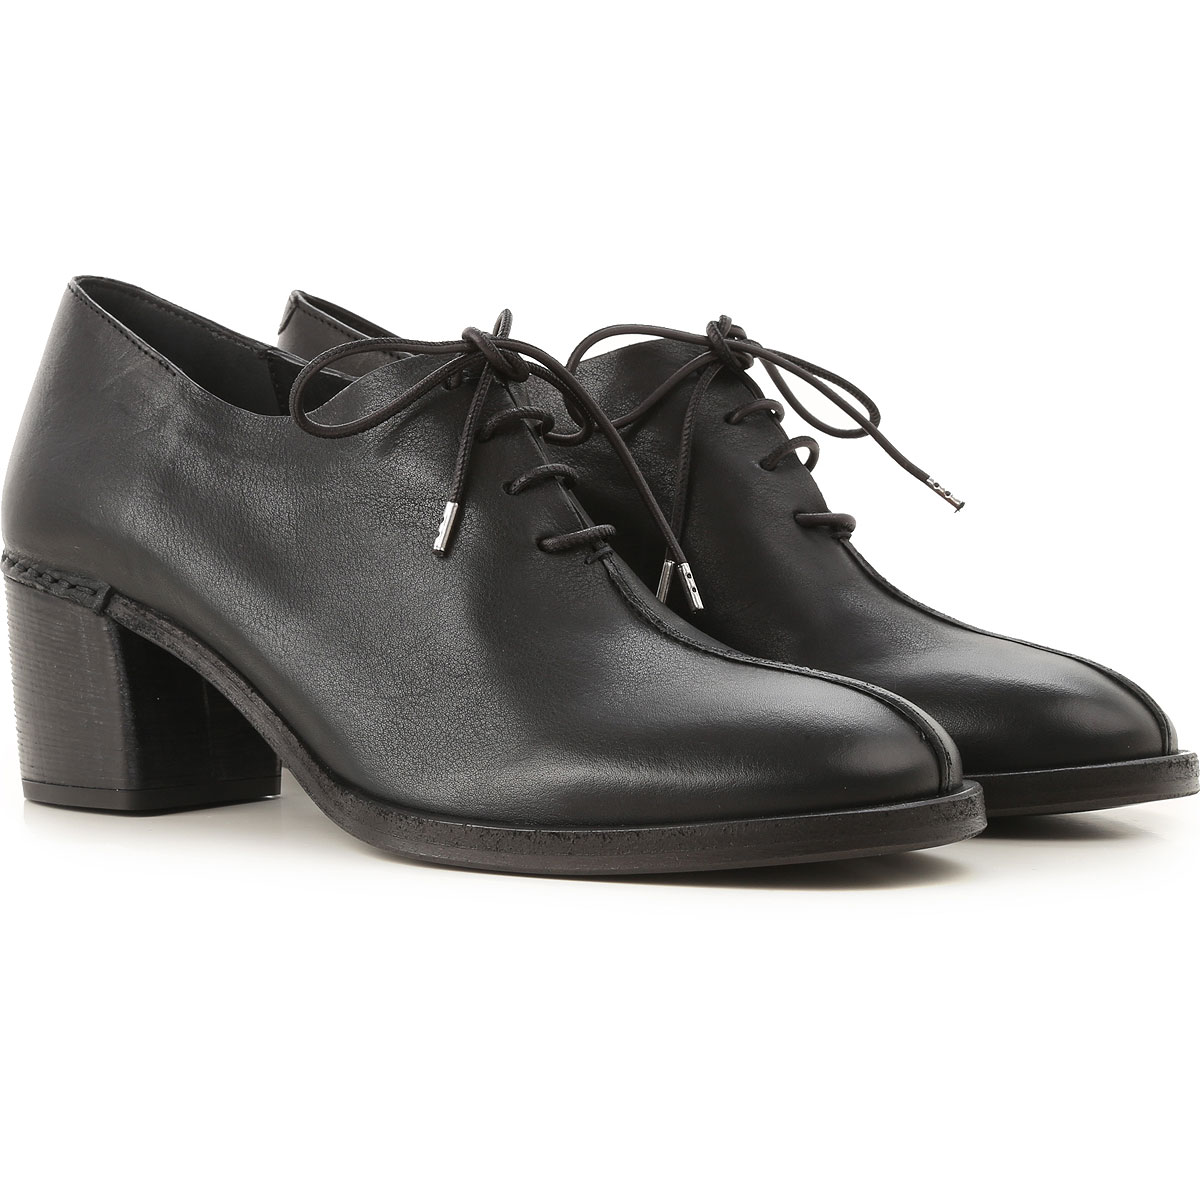 Image of Roberto Del Carlo Lace Up Shoes for Men Oxfords, Derbies and Brogues, Black, Leather, 2017, 10 6 6.5 7 8 8.5 9